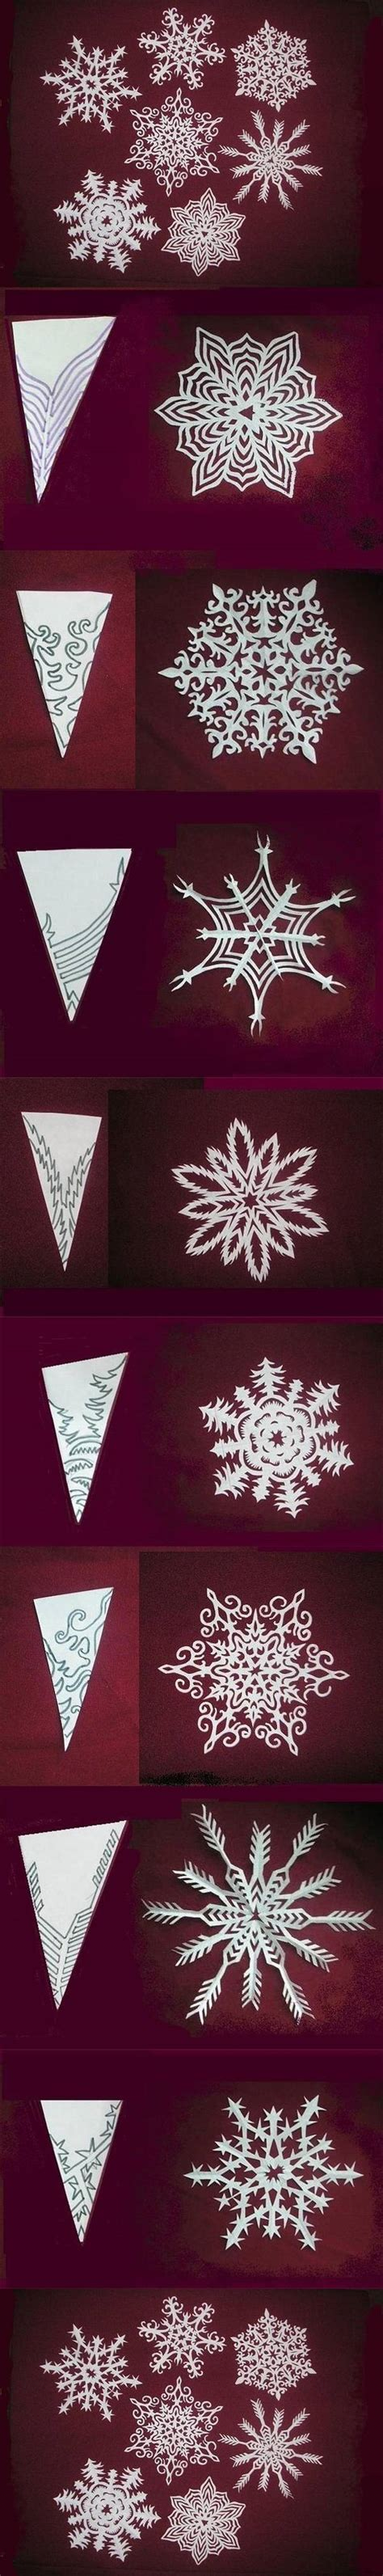 how to make beautiful snowflakes paper craft diy tutorial